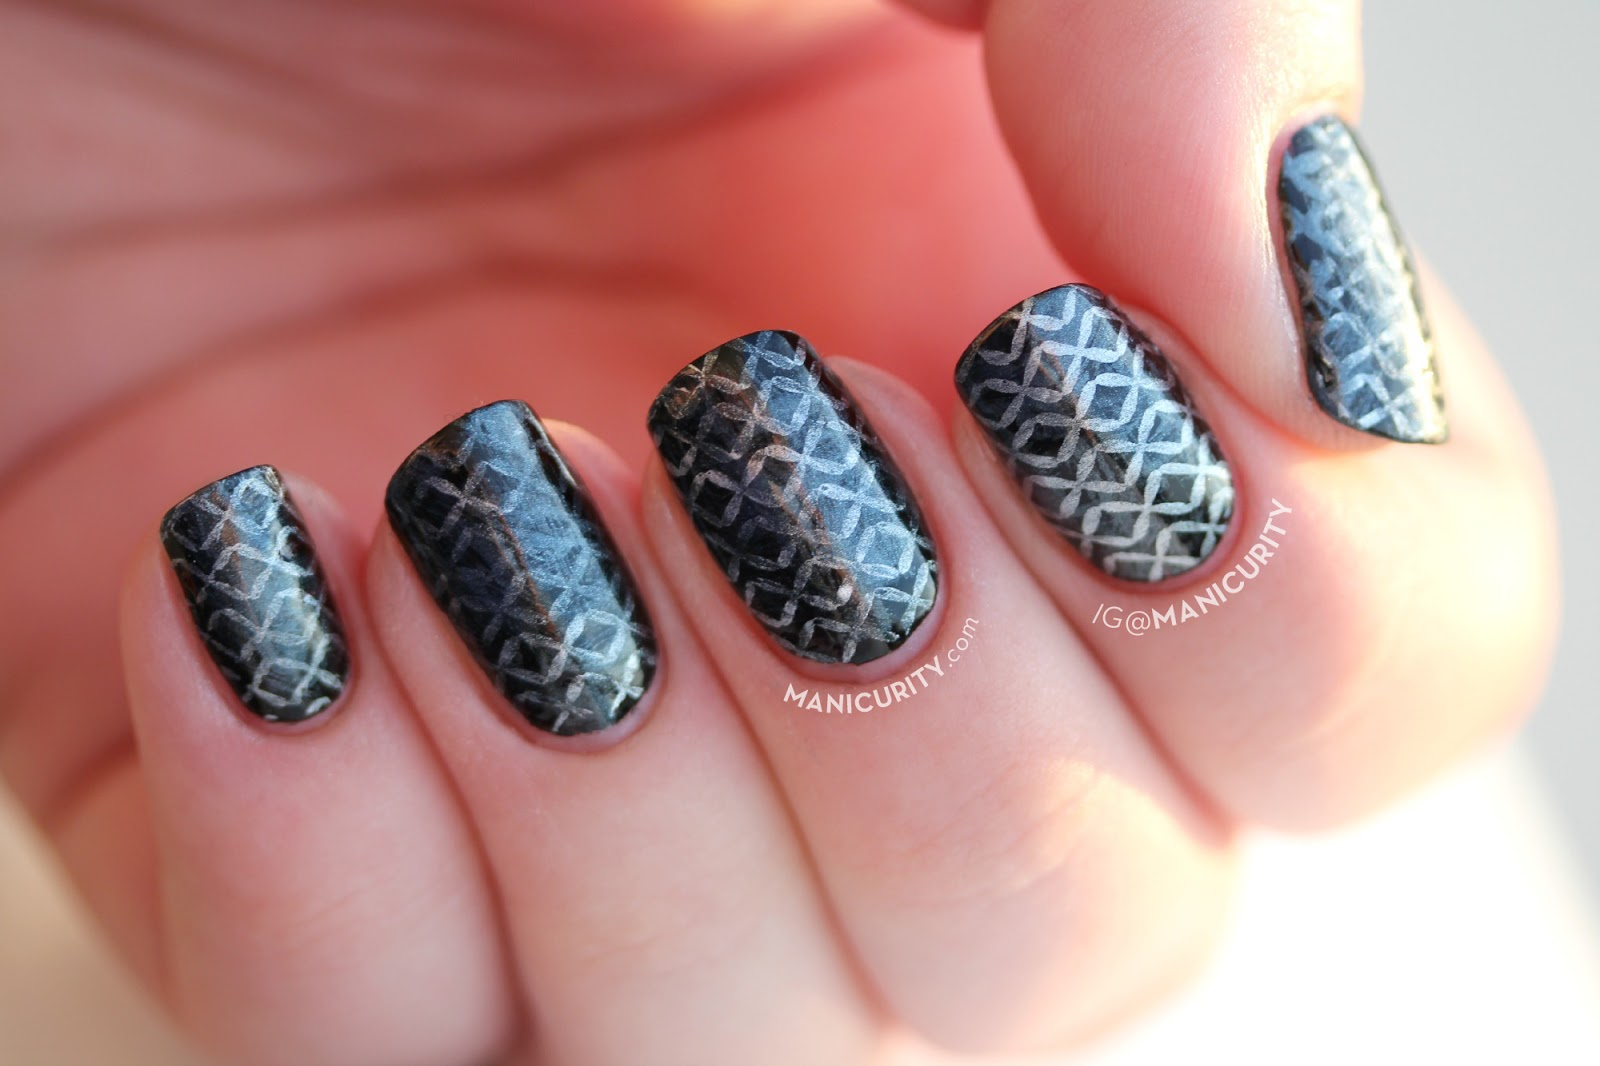 Manicurity: The Digit-al Dozen: Chain Mail Nails